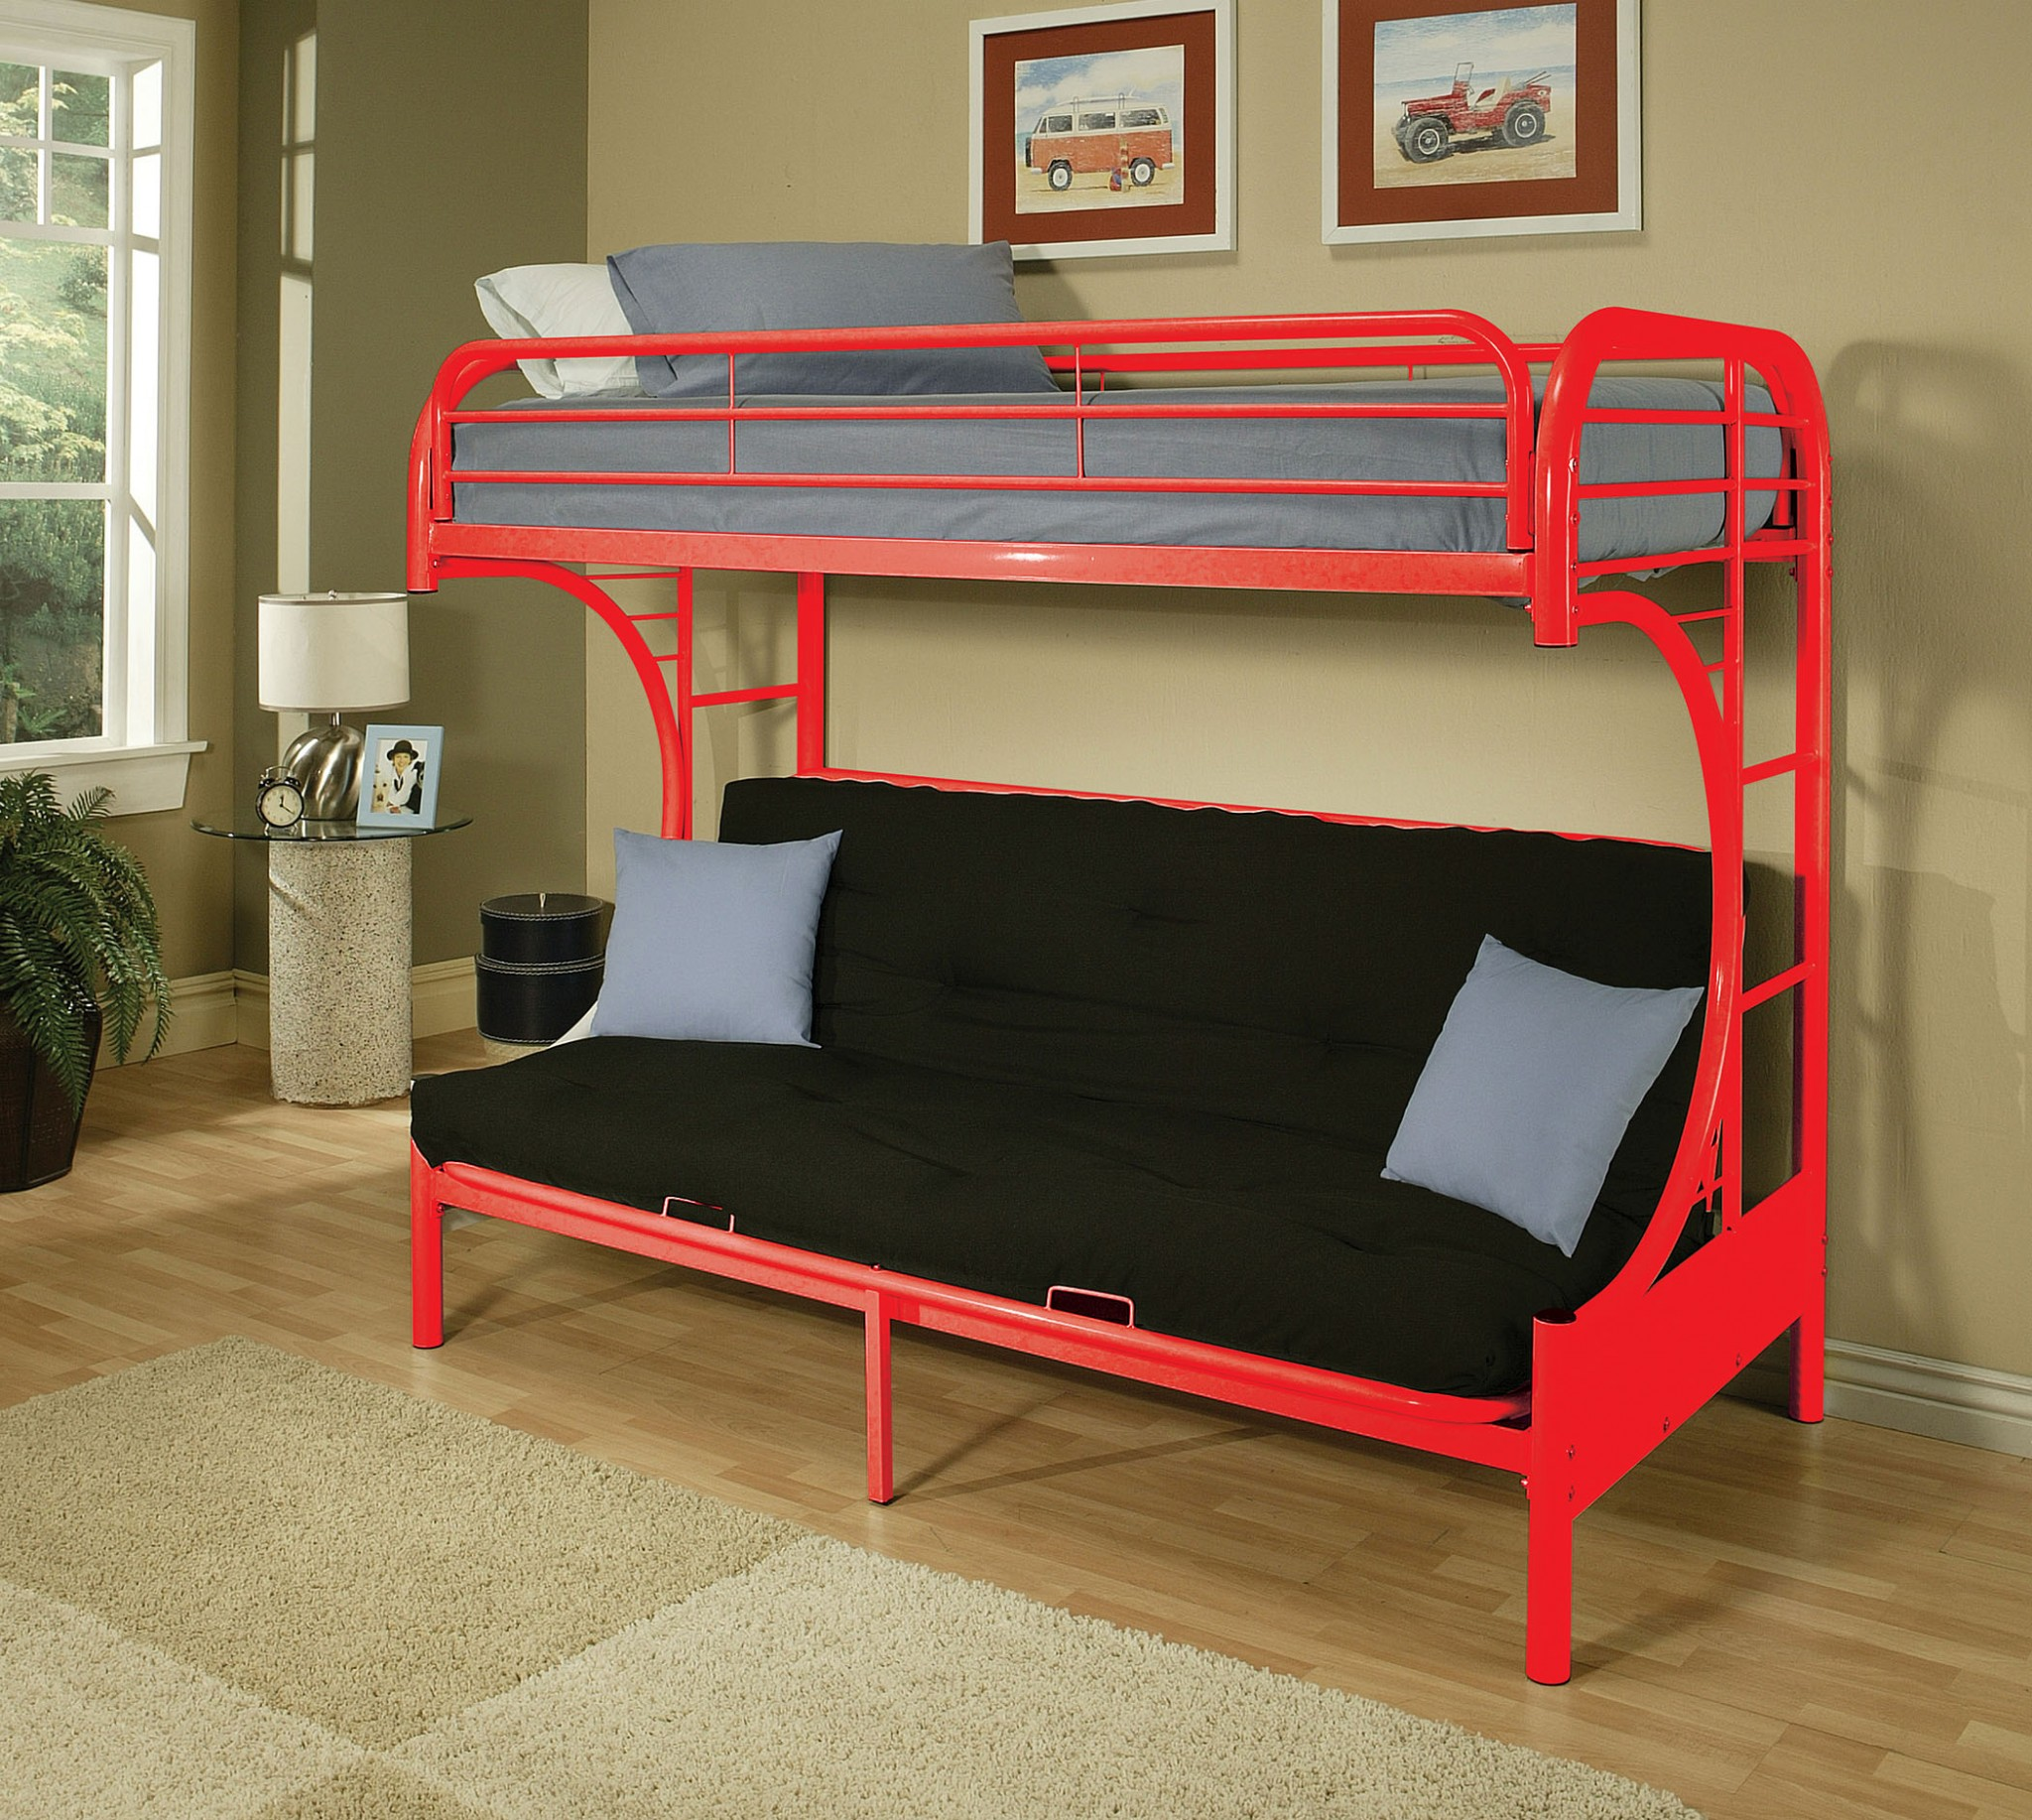 "78"" X 41"" X 65"" Twin Over Full Red Metal Tube Futon Bunk Bed"